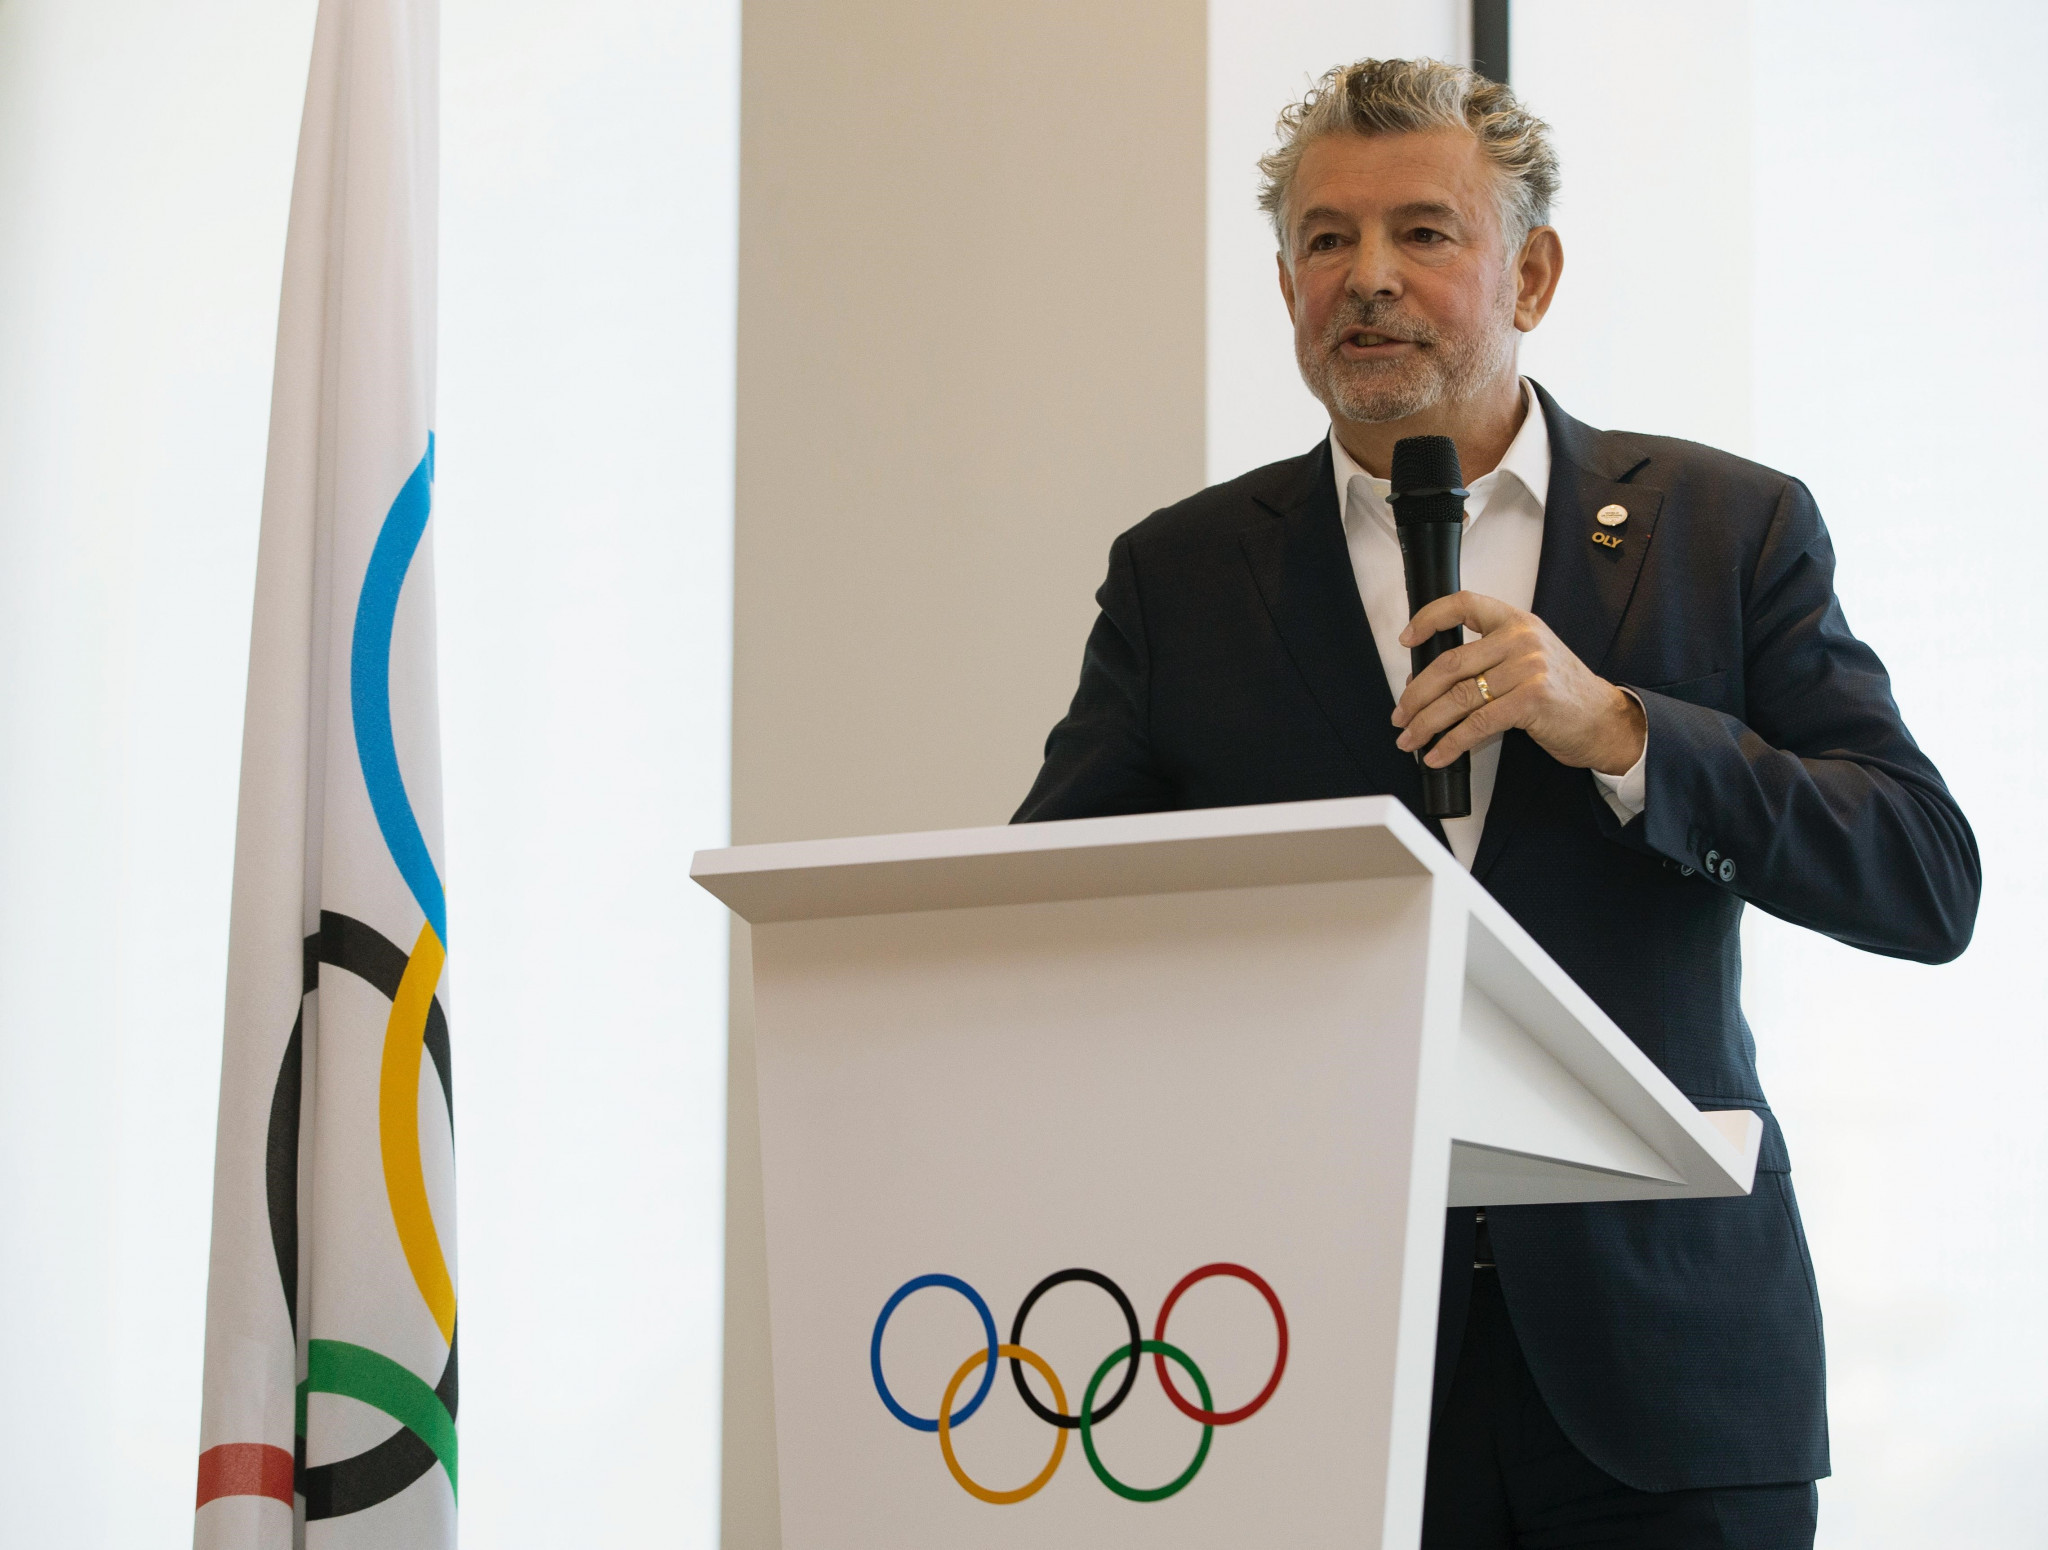 Bouzou re-elected for third term as President of World Olympians Association